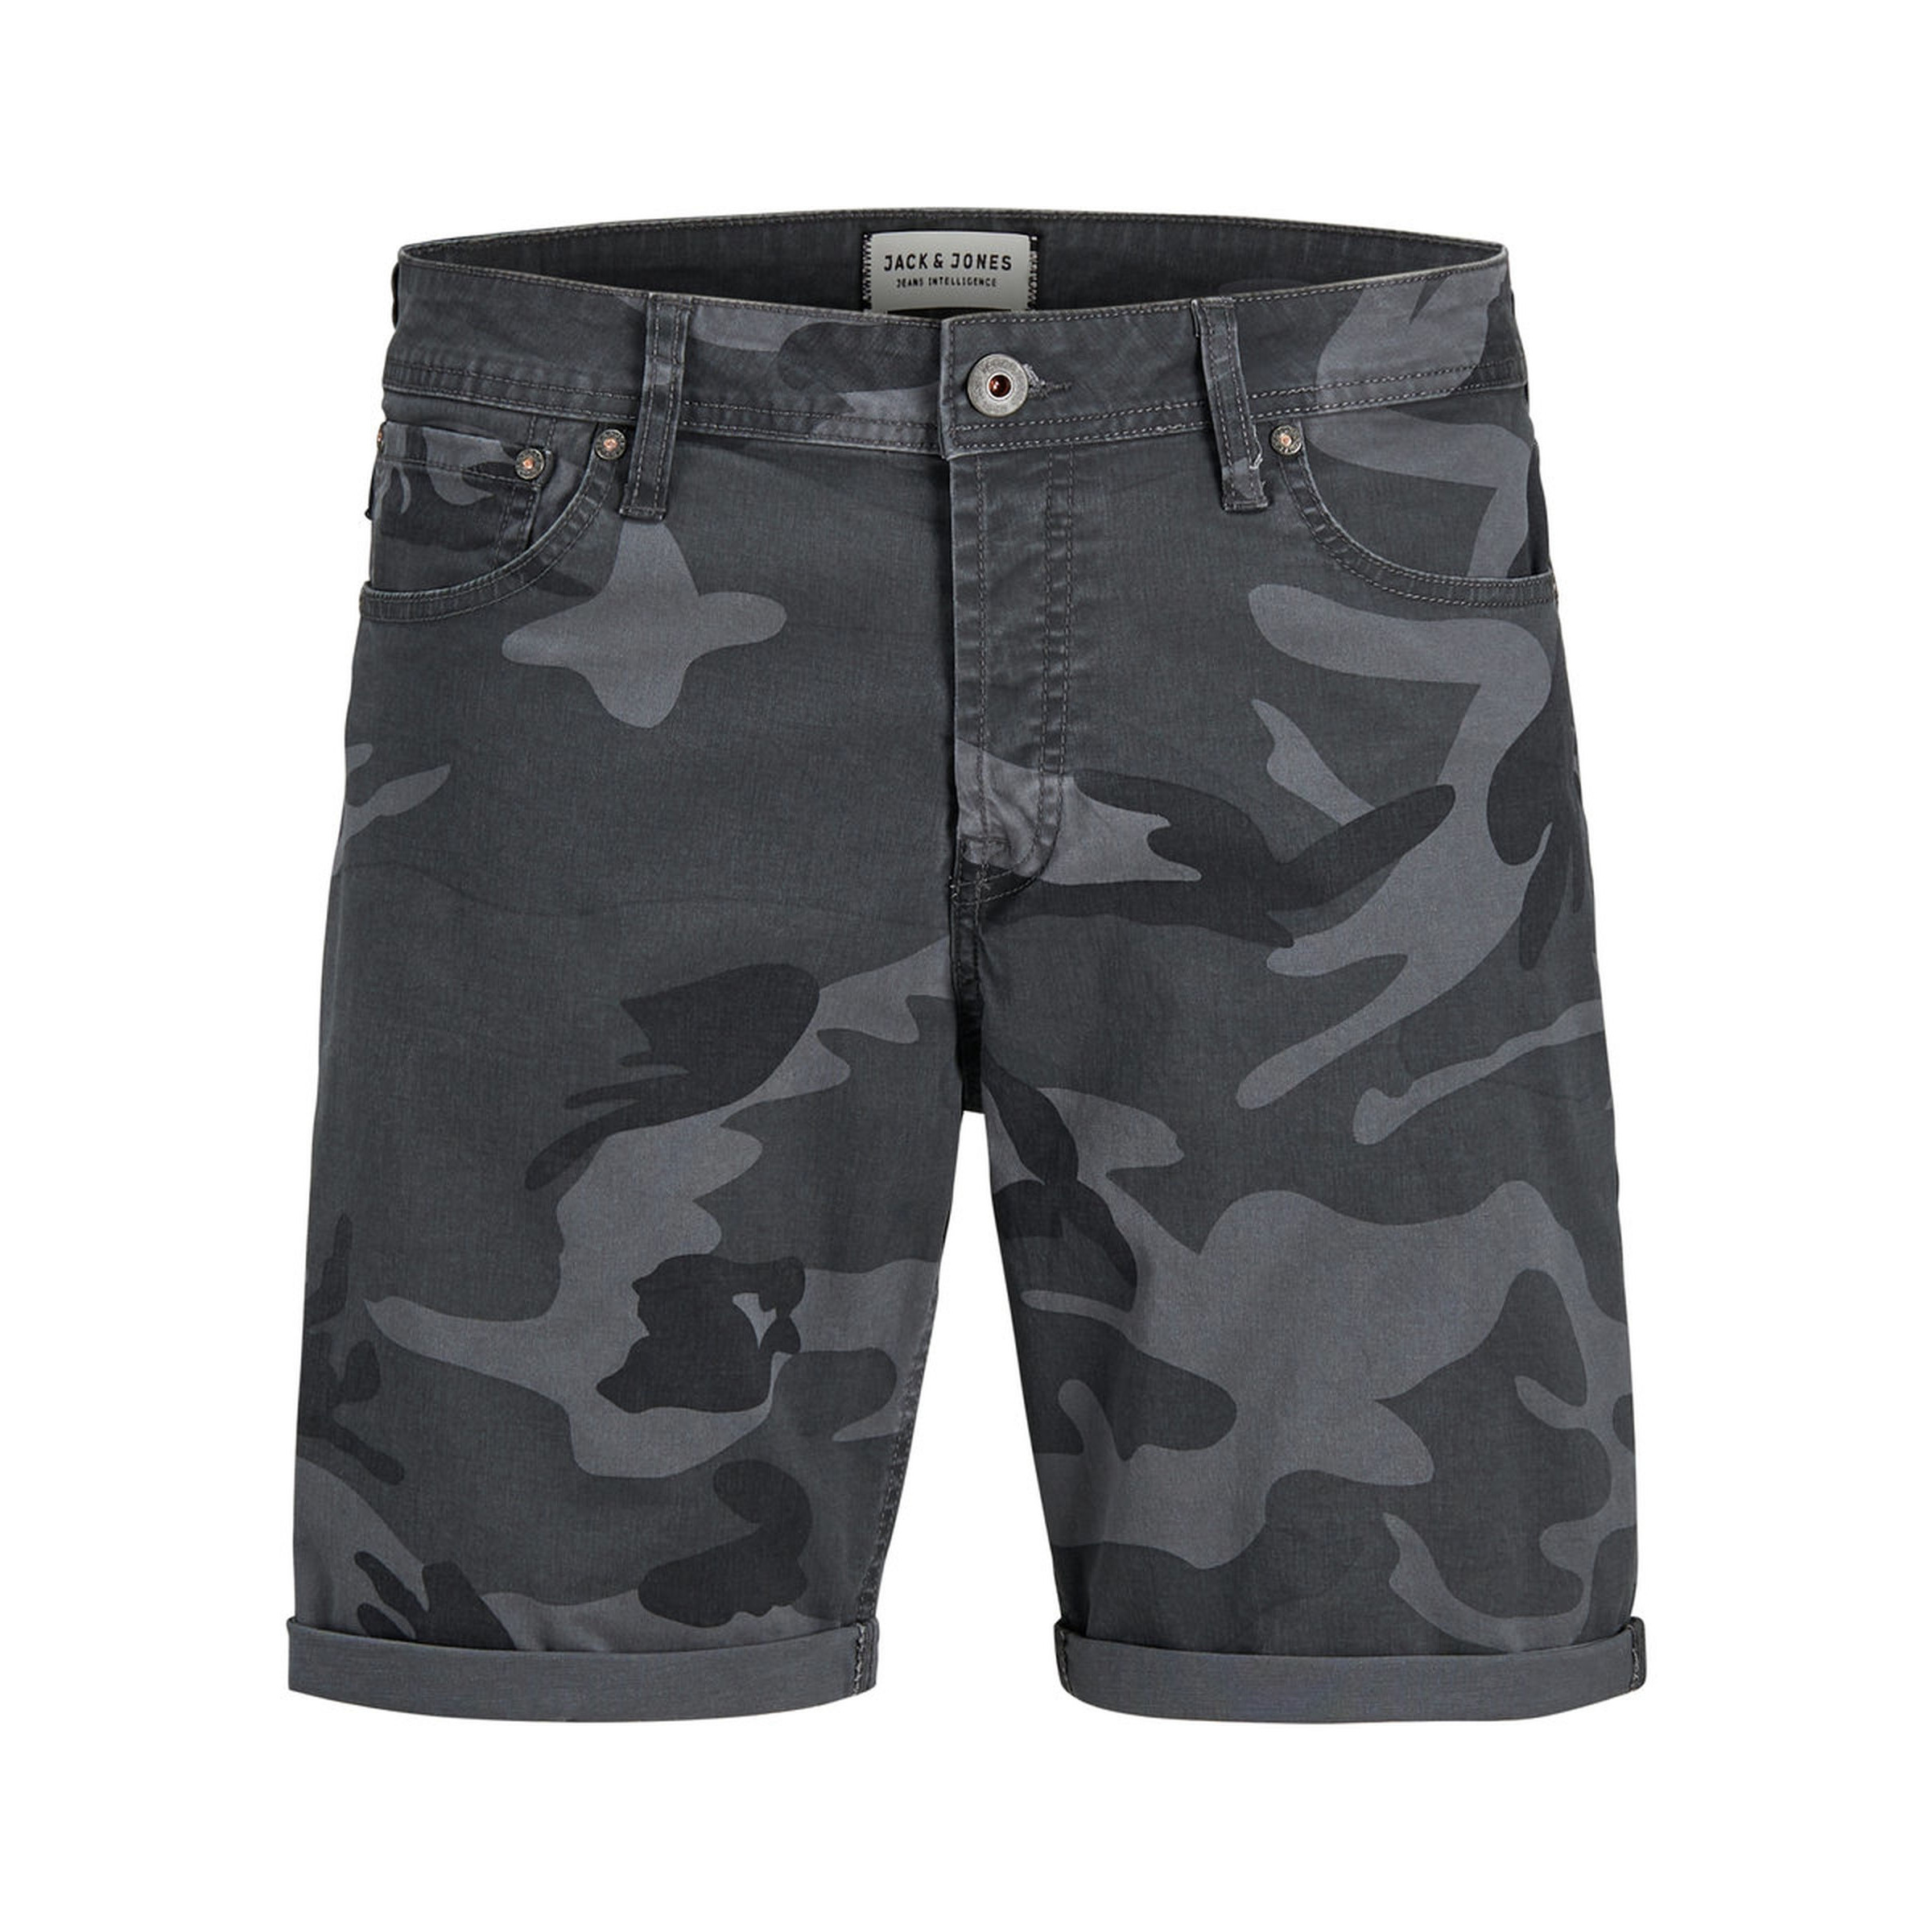 Jack Jones Men S Rick Chino Stretch Shorts Dark Grey Camo Jean Scene